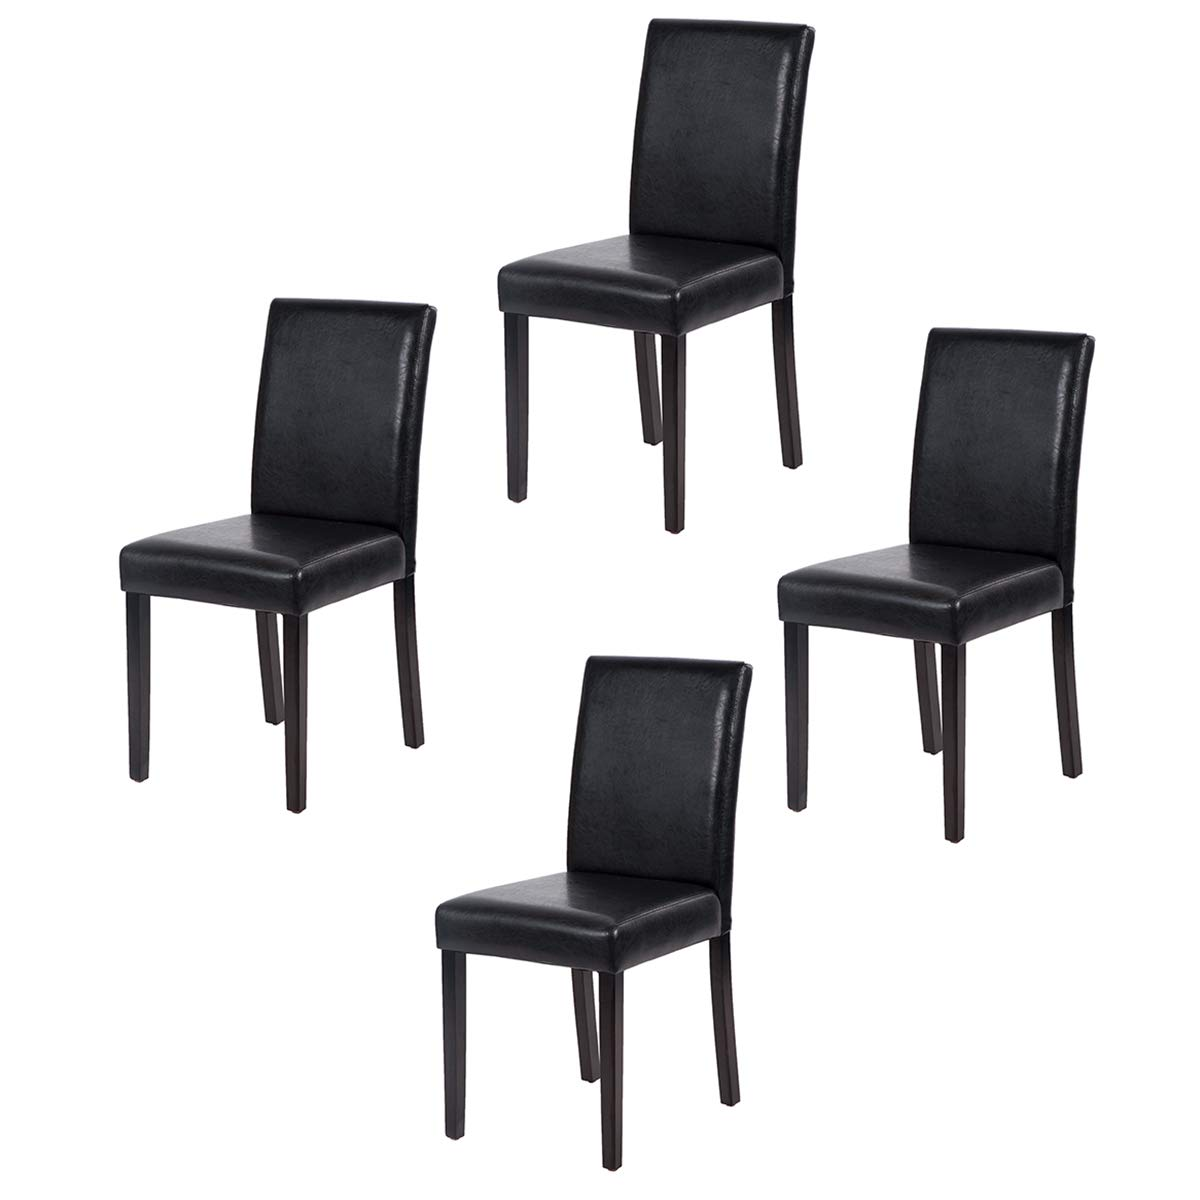 Dining Chairs Dining Room Chairs Parsons Chair Kitchen Chairs Set of 4 Dining Chairs Side Chairs for Home Kitchen Living Room by FDW